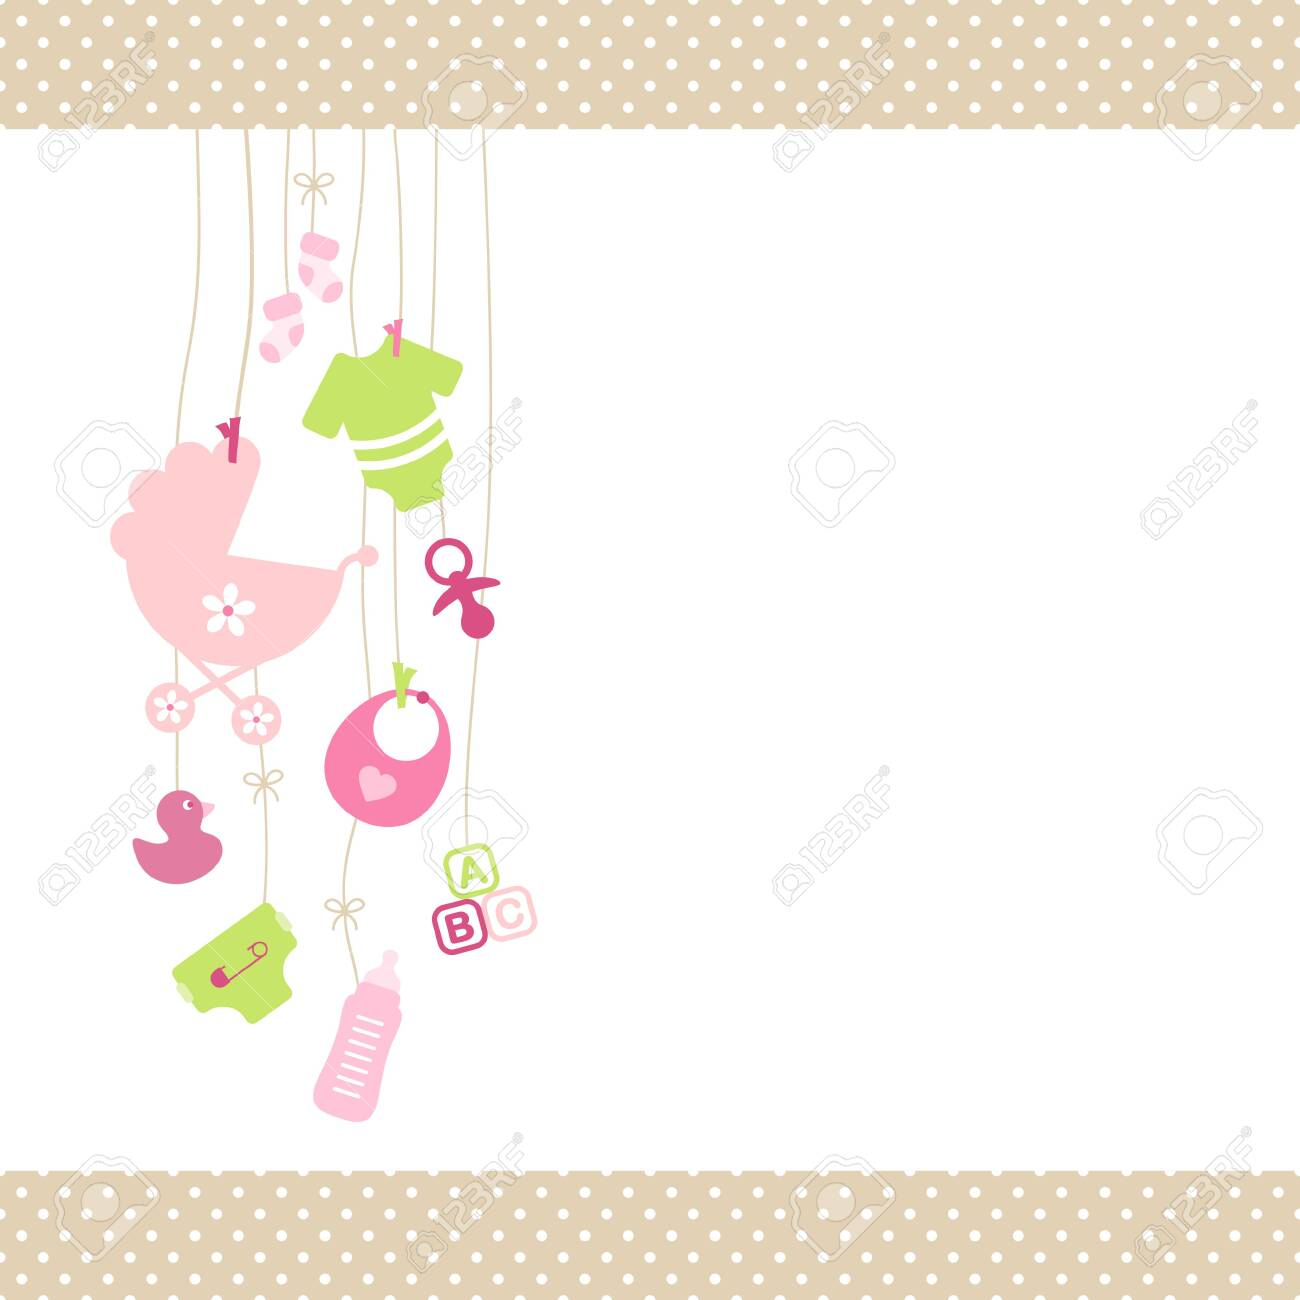 Left Hanging Baby Girl Icons Pink And Green Dot Border Beige - 128239621